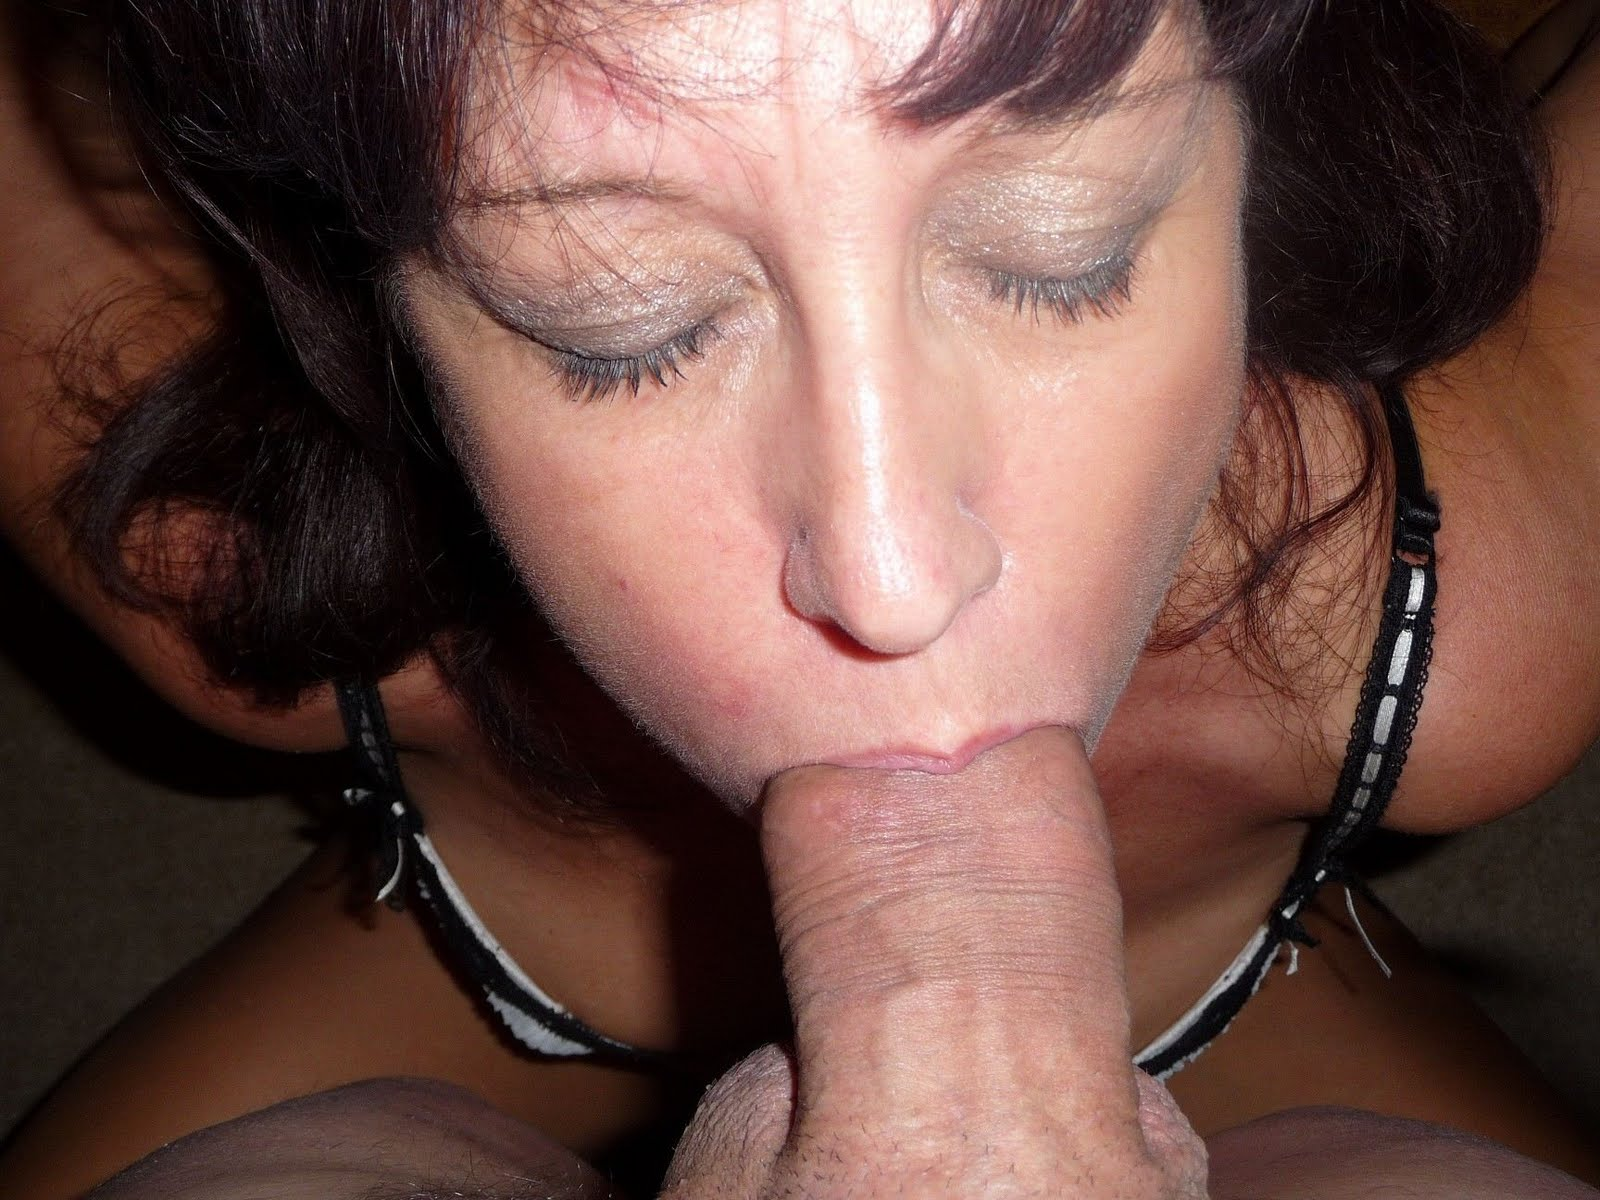 Milf Blowjob On Mature Man